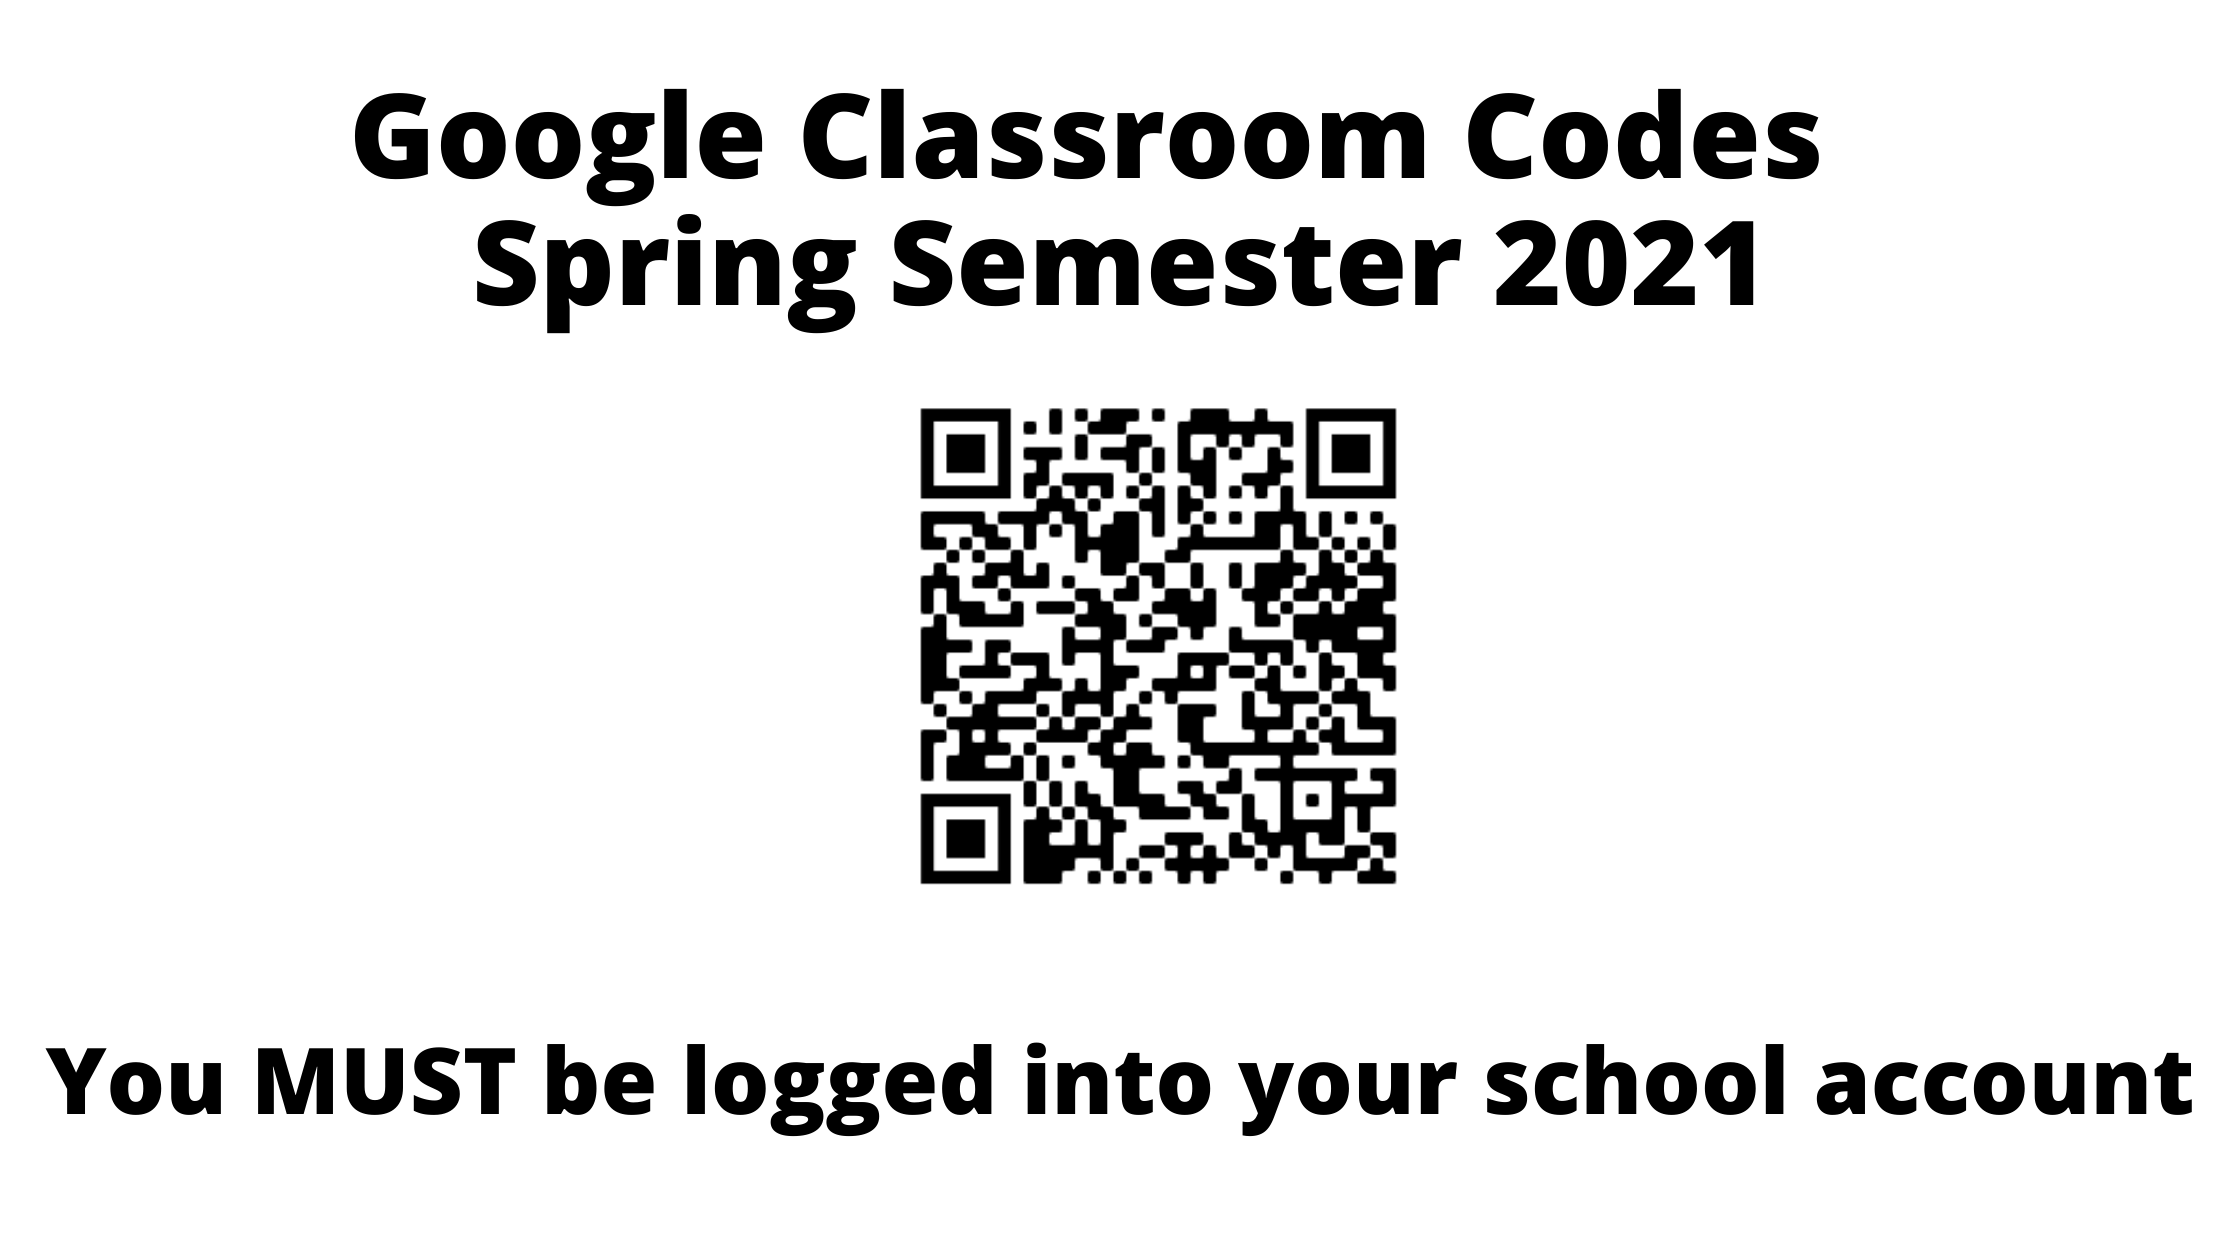 QR CODE for google class spring 21 1